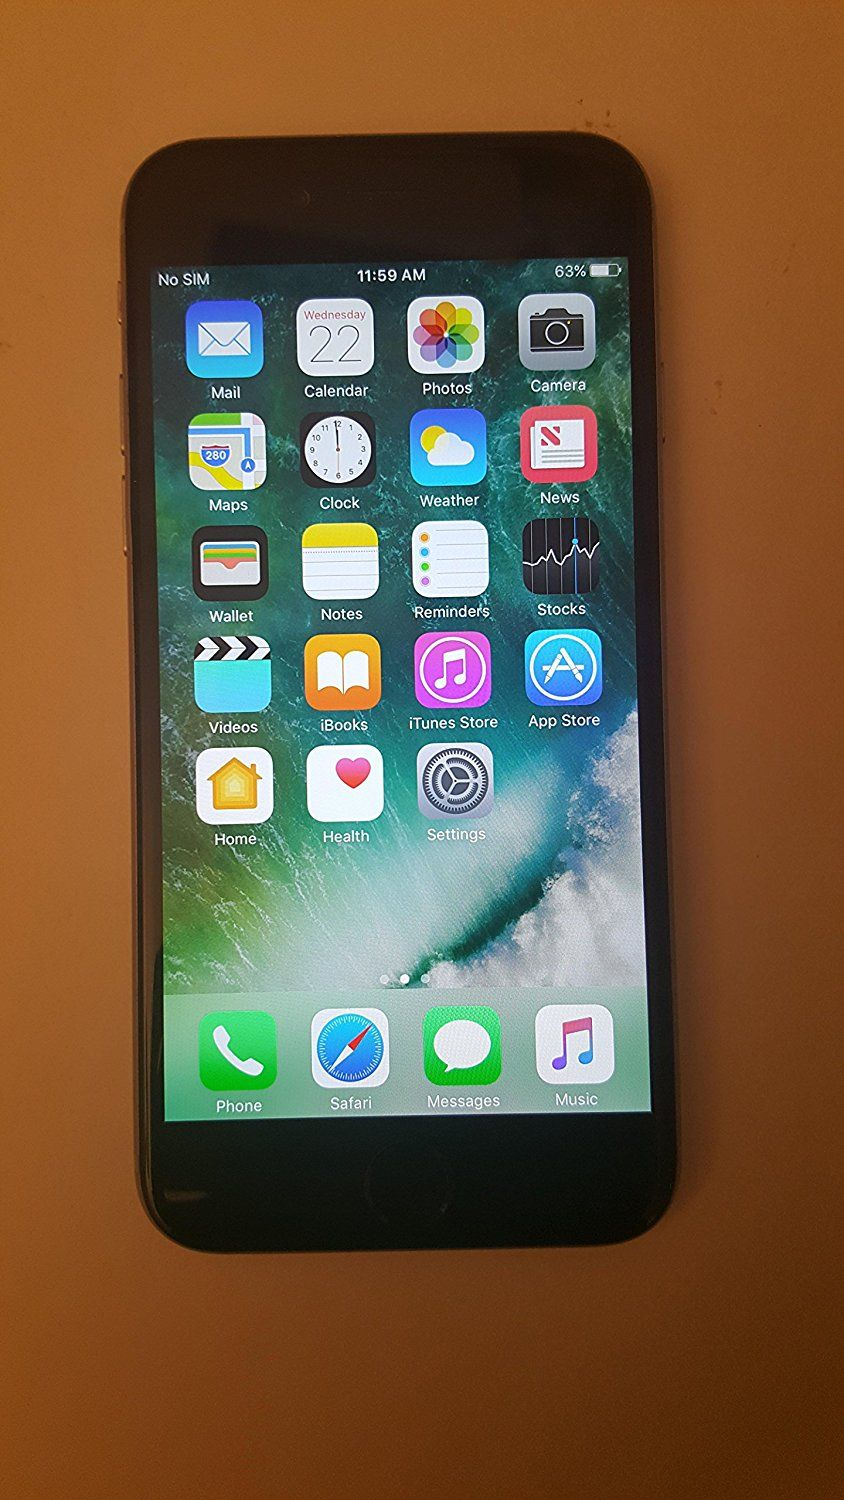 Amazon Com Apple Iphone 6 16gb 4g Lte Unlocked Gsm Cell Phone Space Gray Size 16 Gb Color Space Grey Model A1549 Ele Apple Iphone Iphone Apple Iphone 6